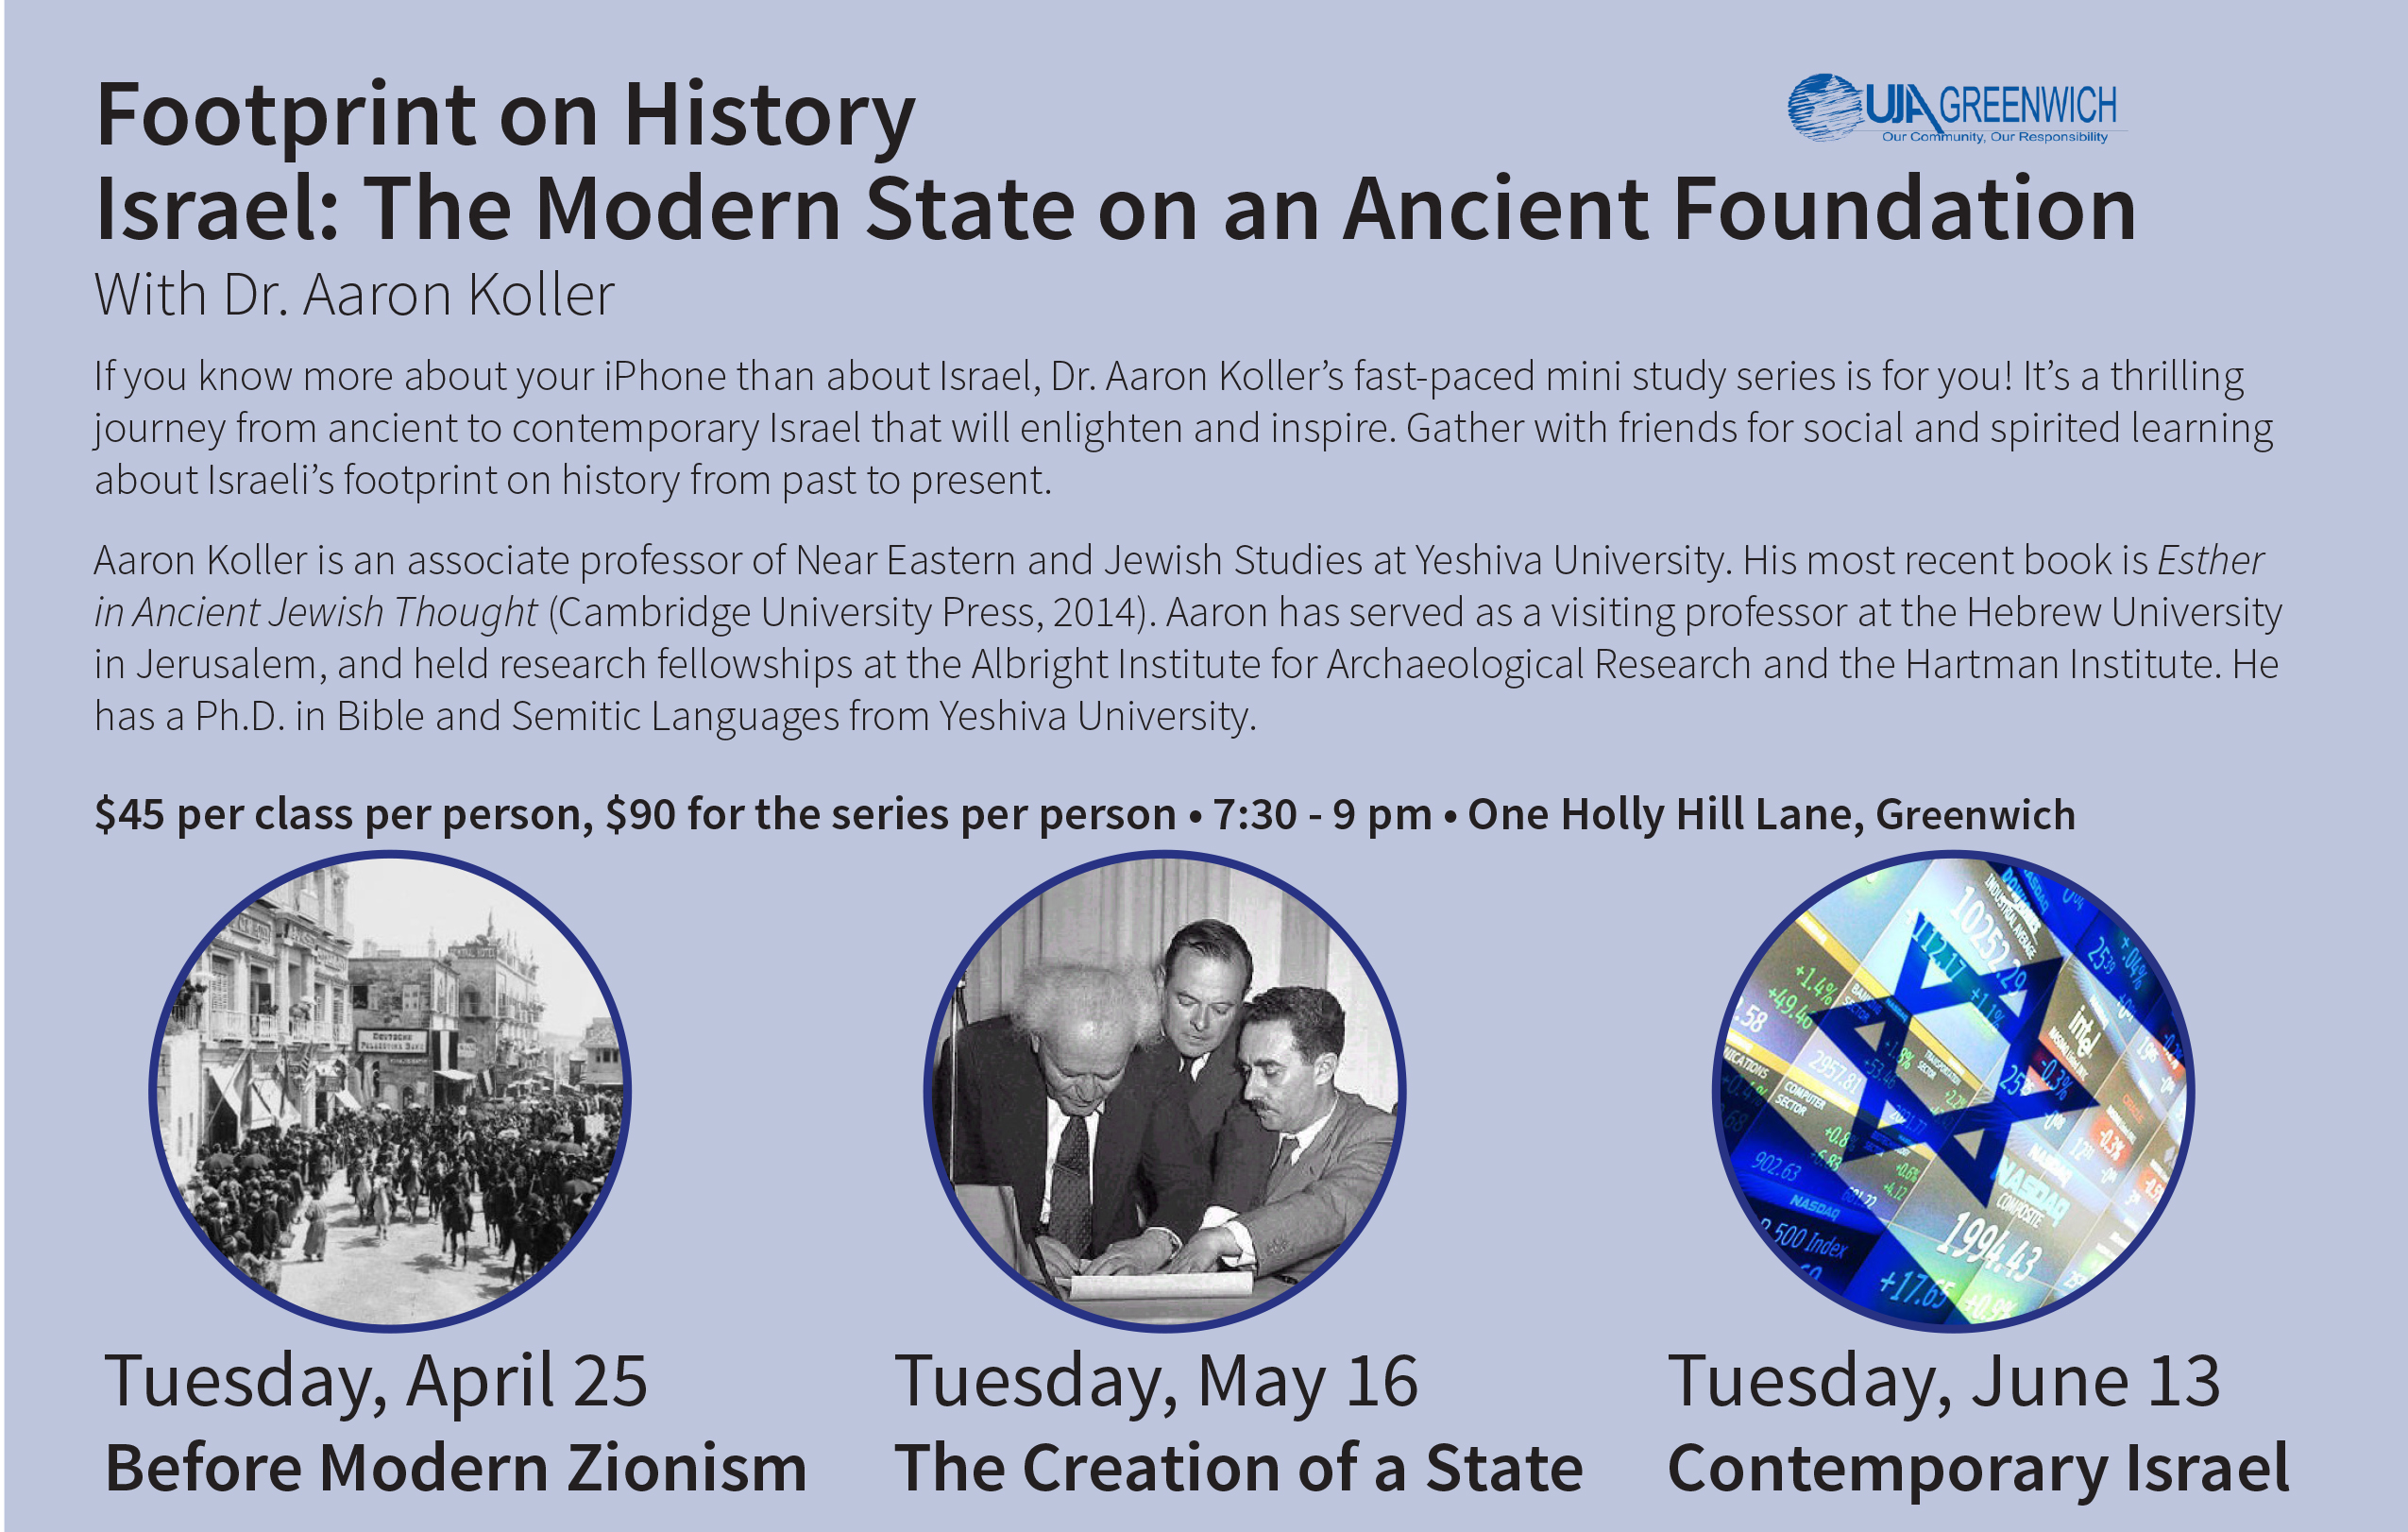 Israel: The Modern State on an Ancient Foundation